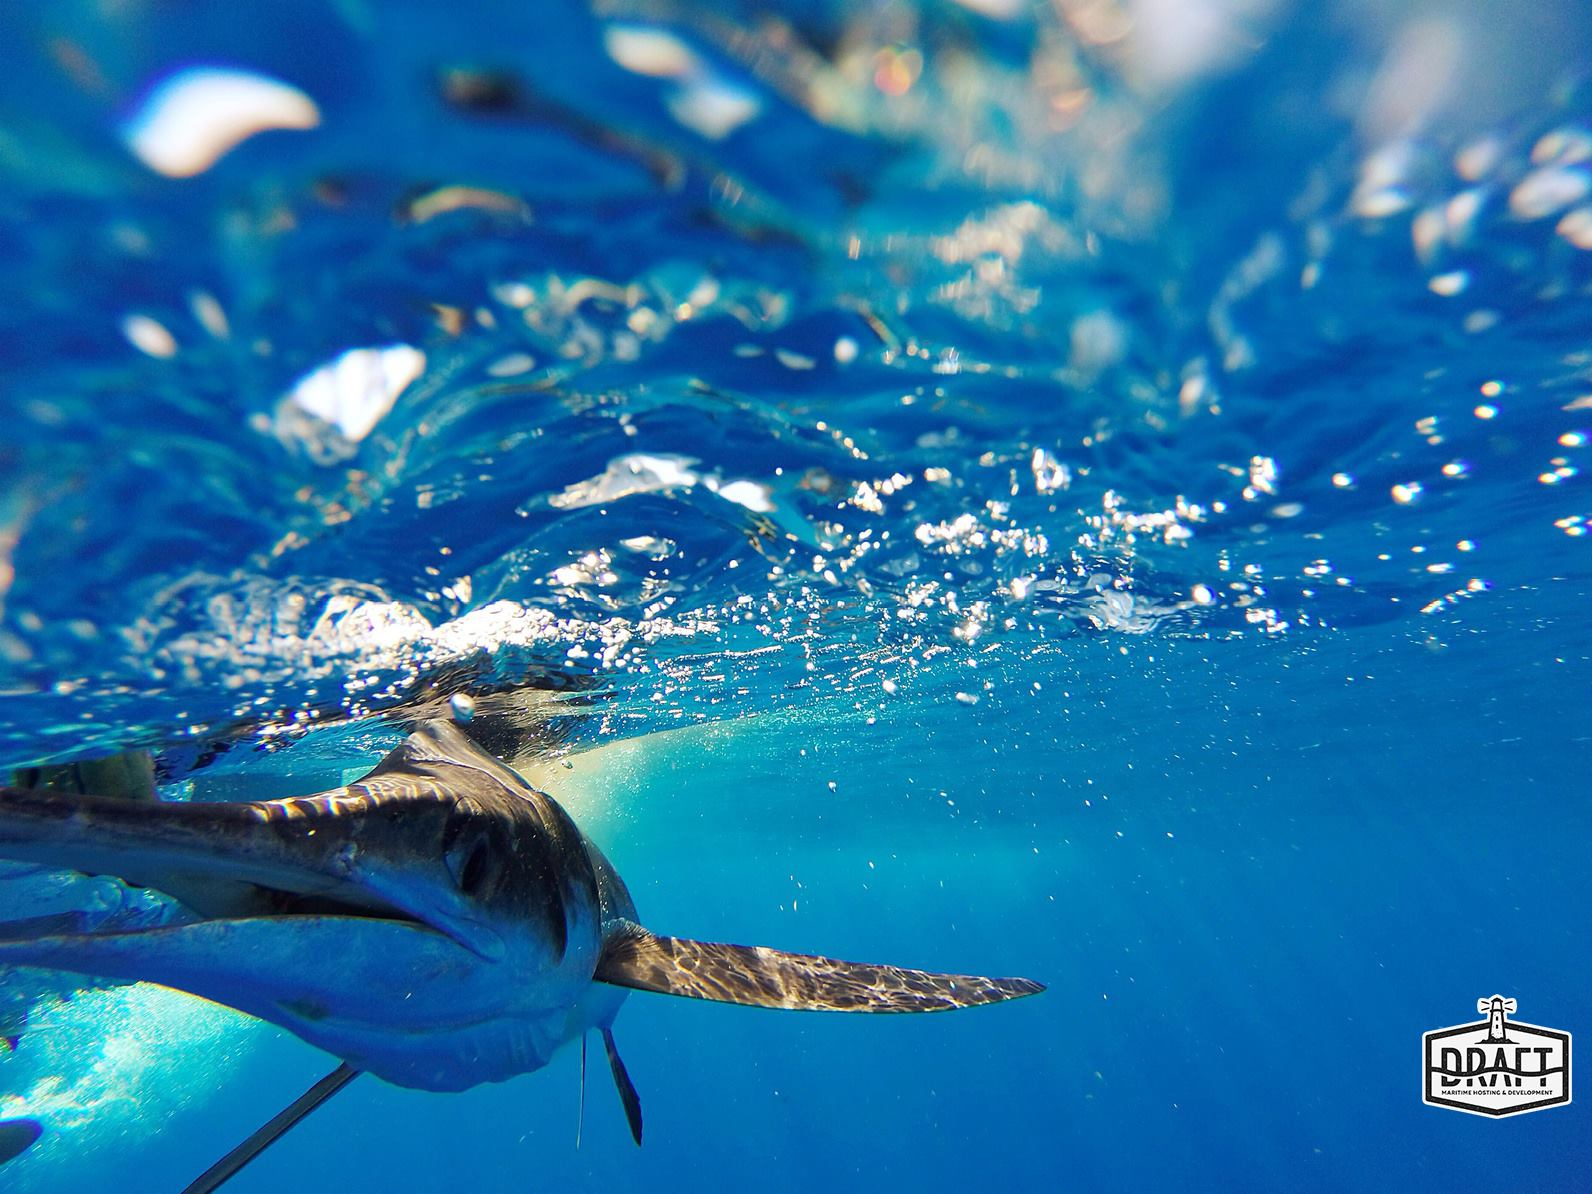 DRAFT Hosting - Bill Fish on Blue Water With Water Mark